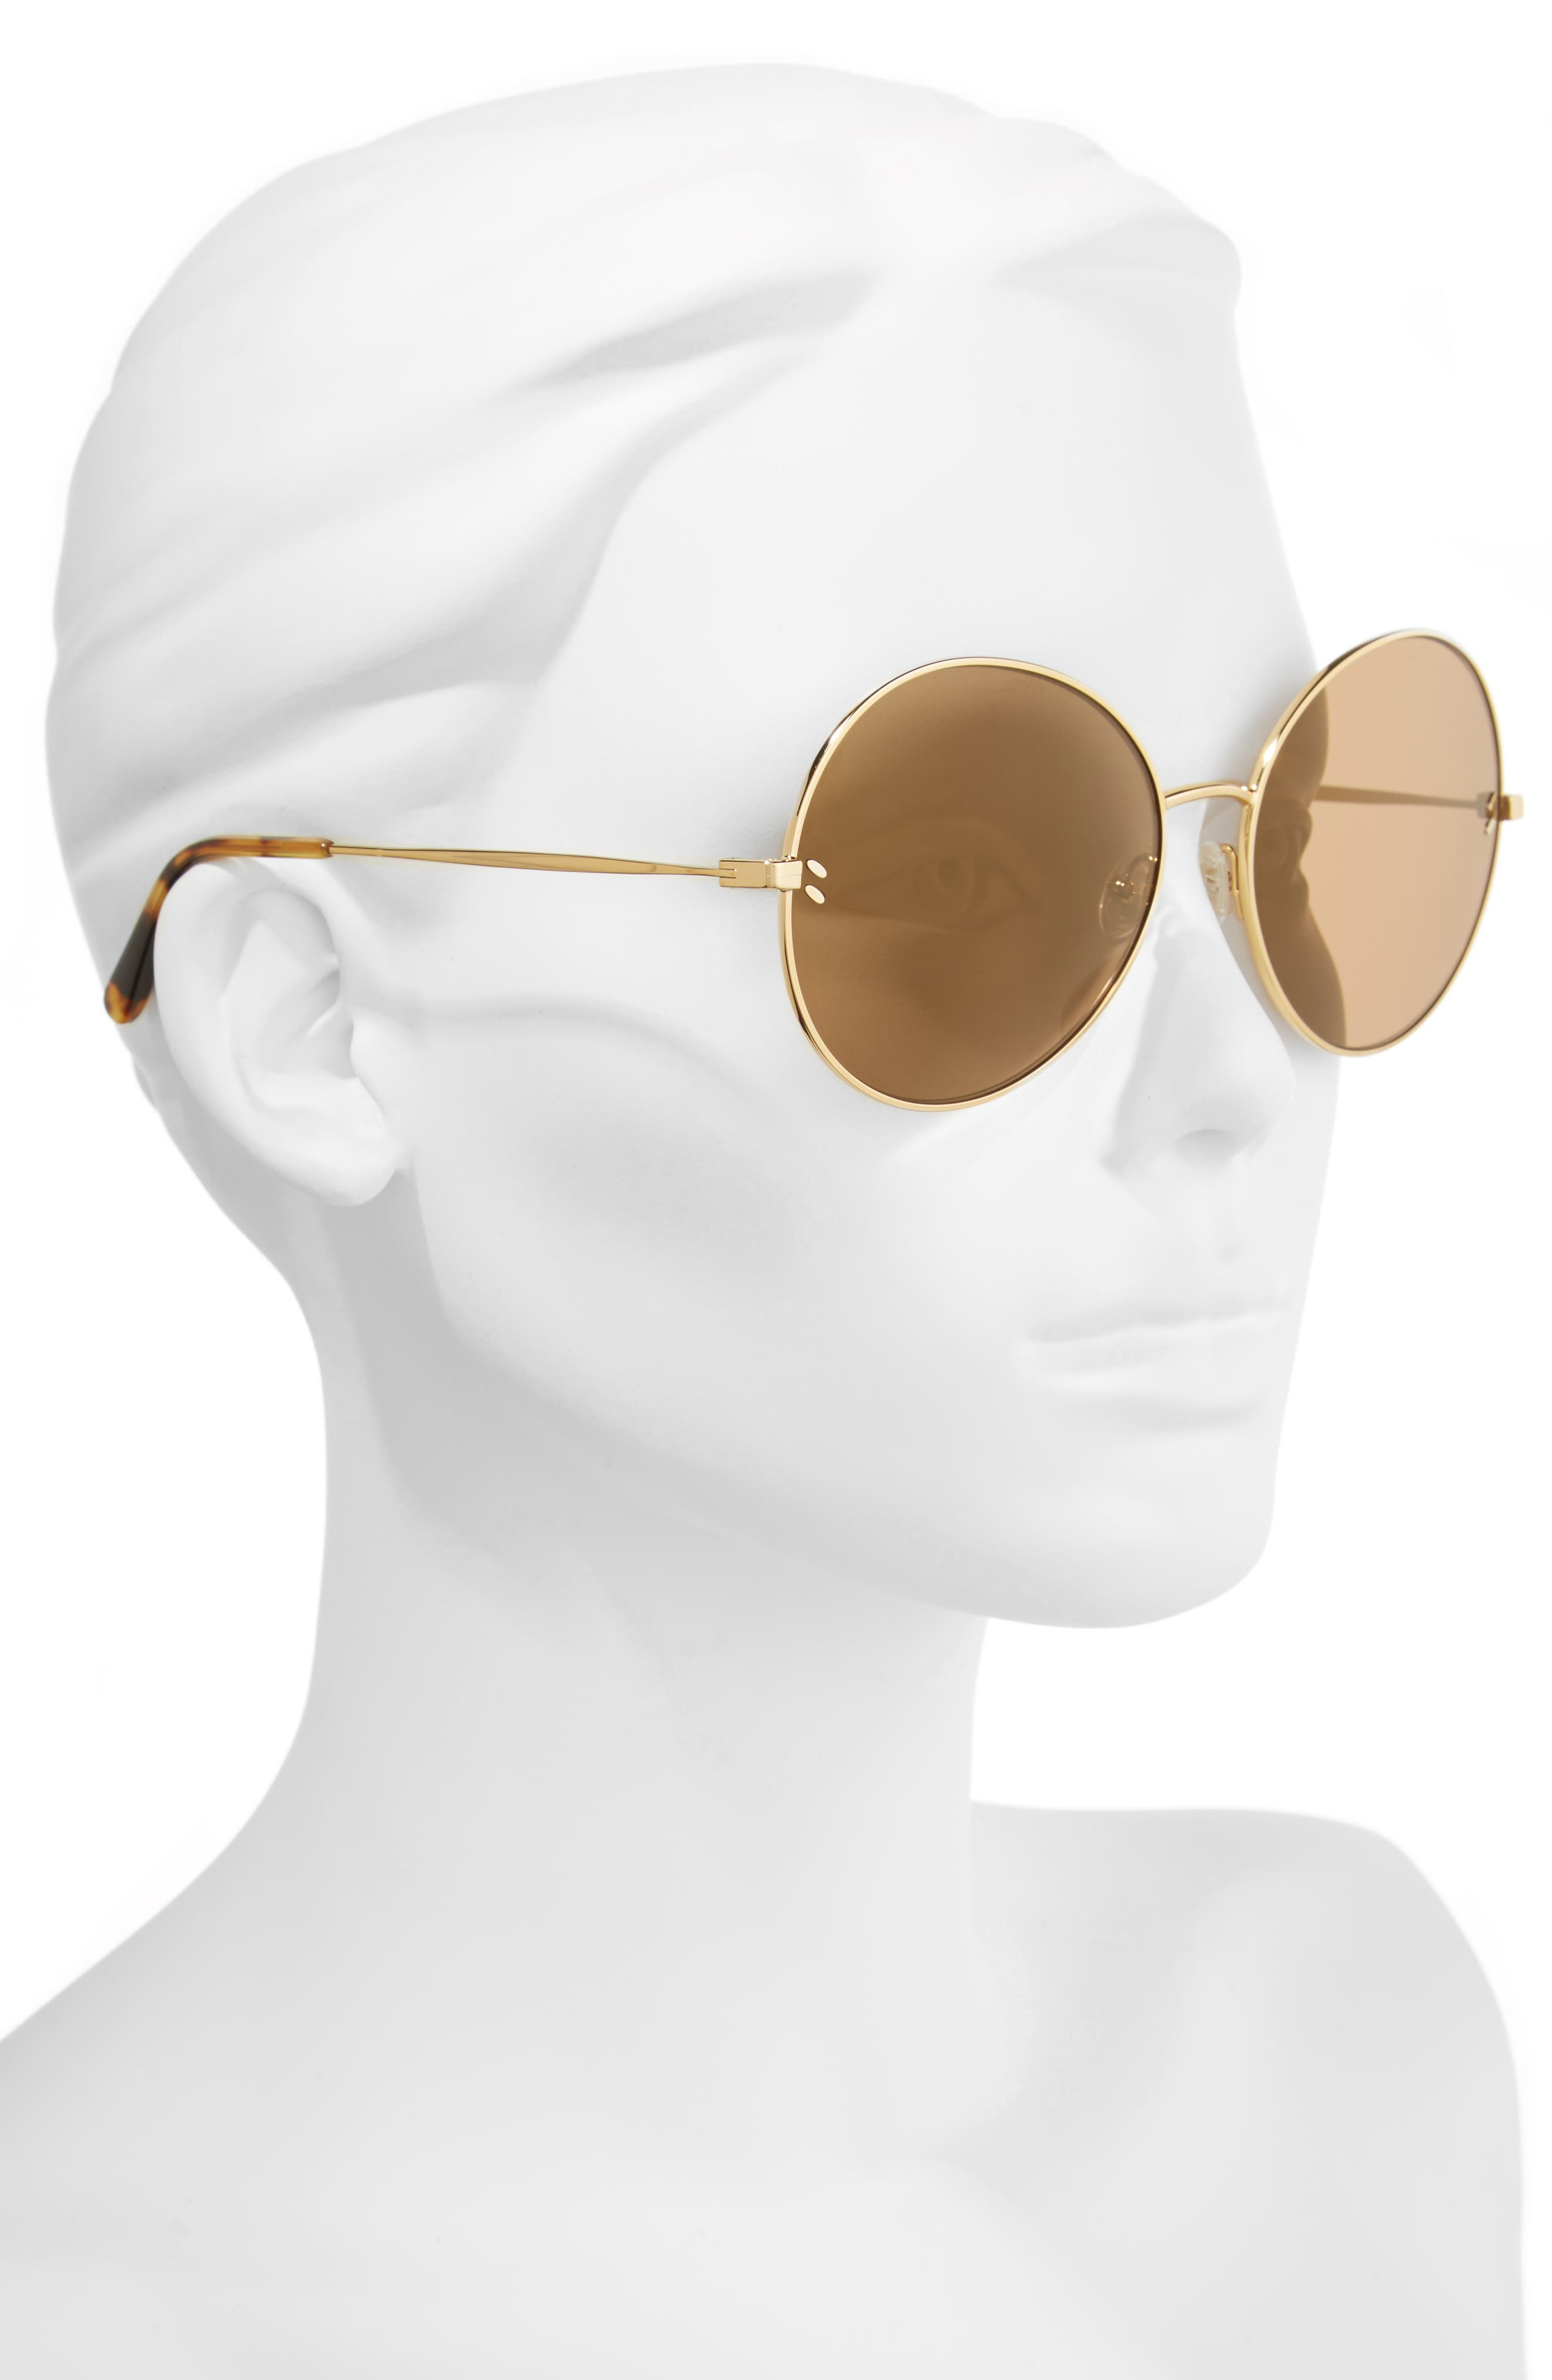 62mm Round Sunglasses,                             Alternate thumbnail 2, color,                             Gold/ Brown